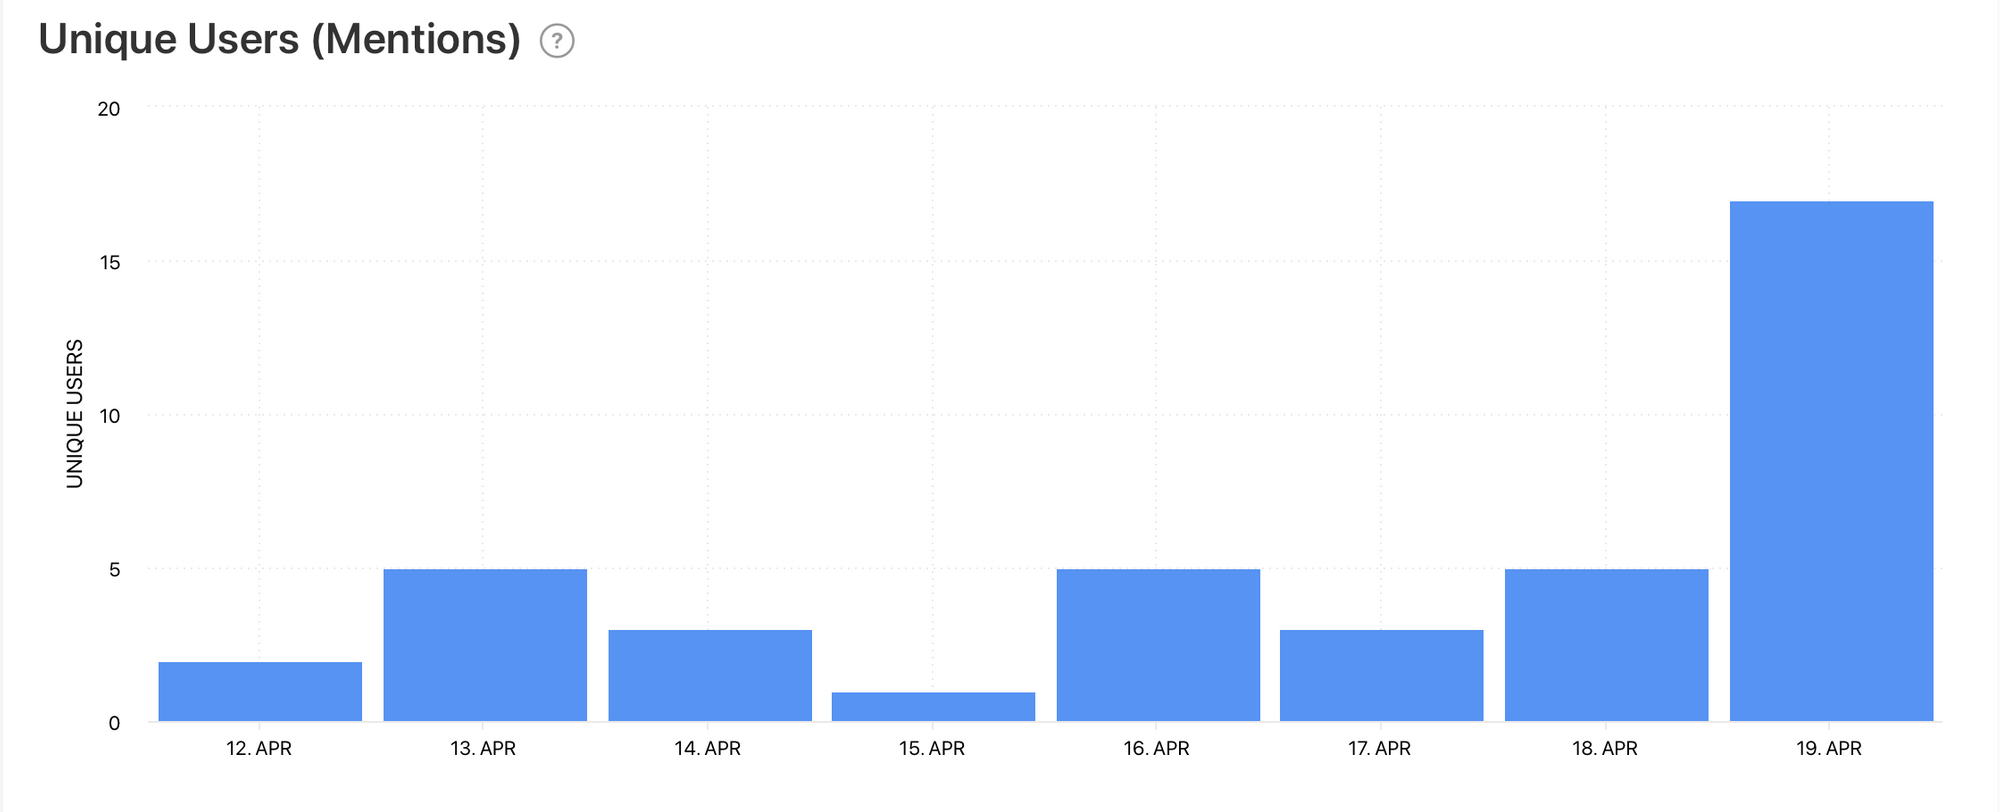 Unique Users (Mentions) graph by Minter.io